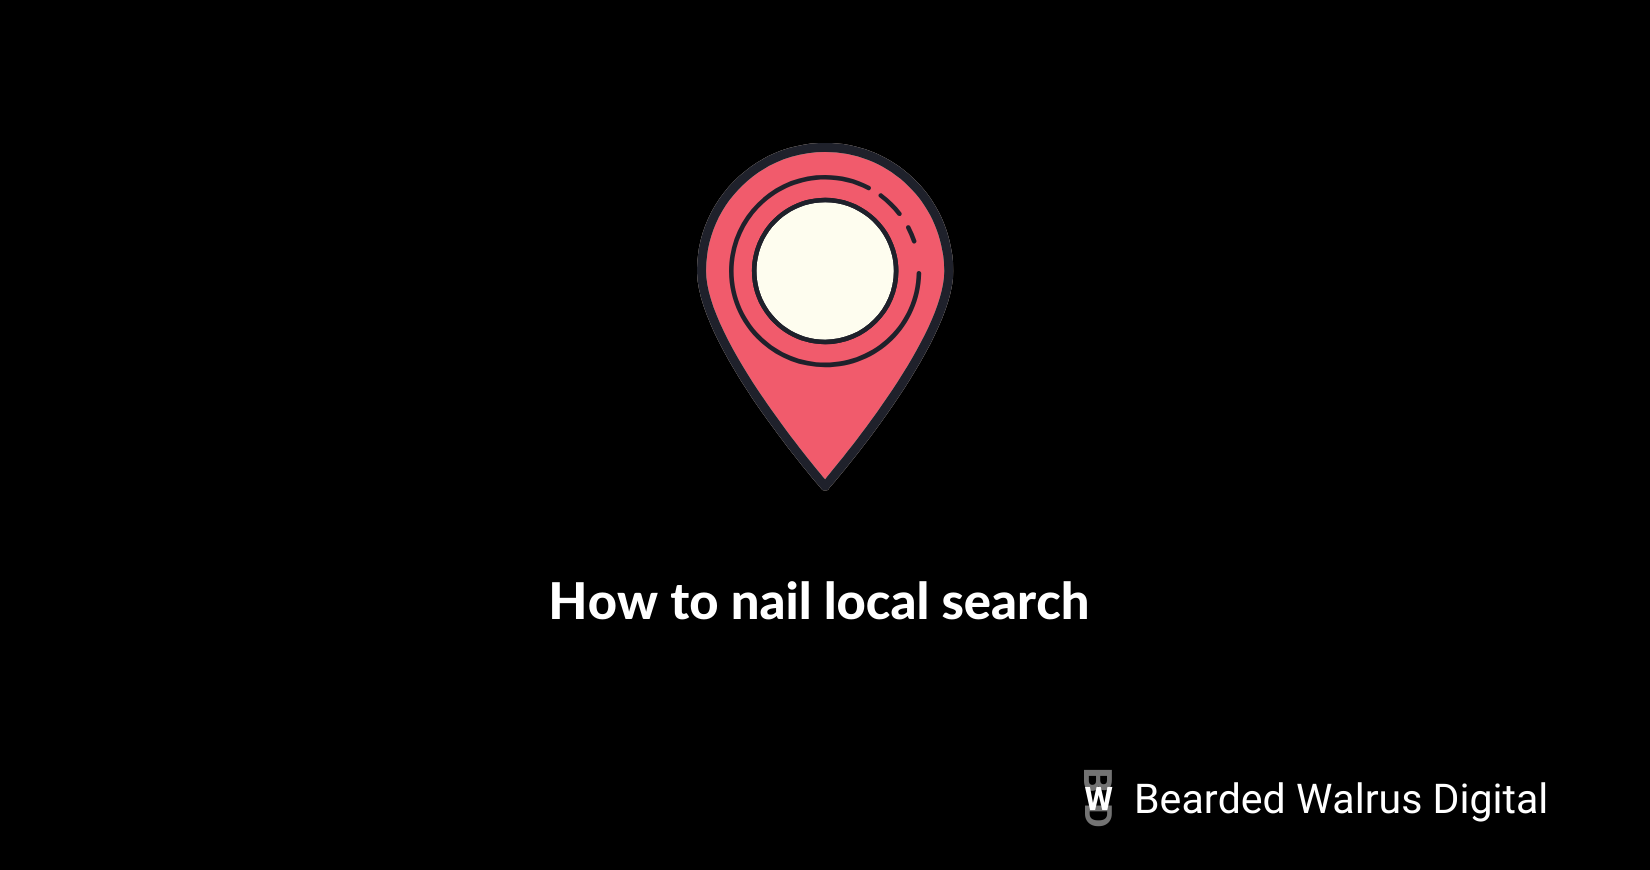 nail local search in hull